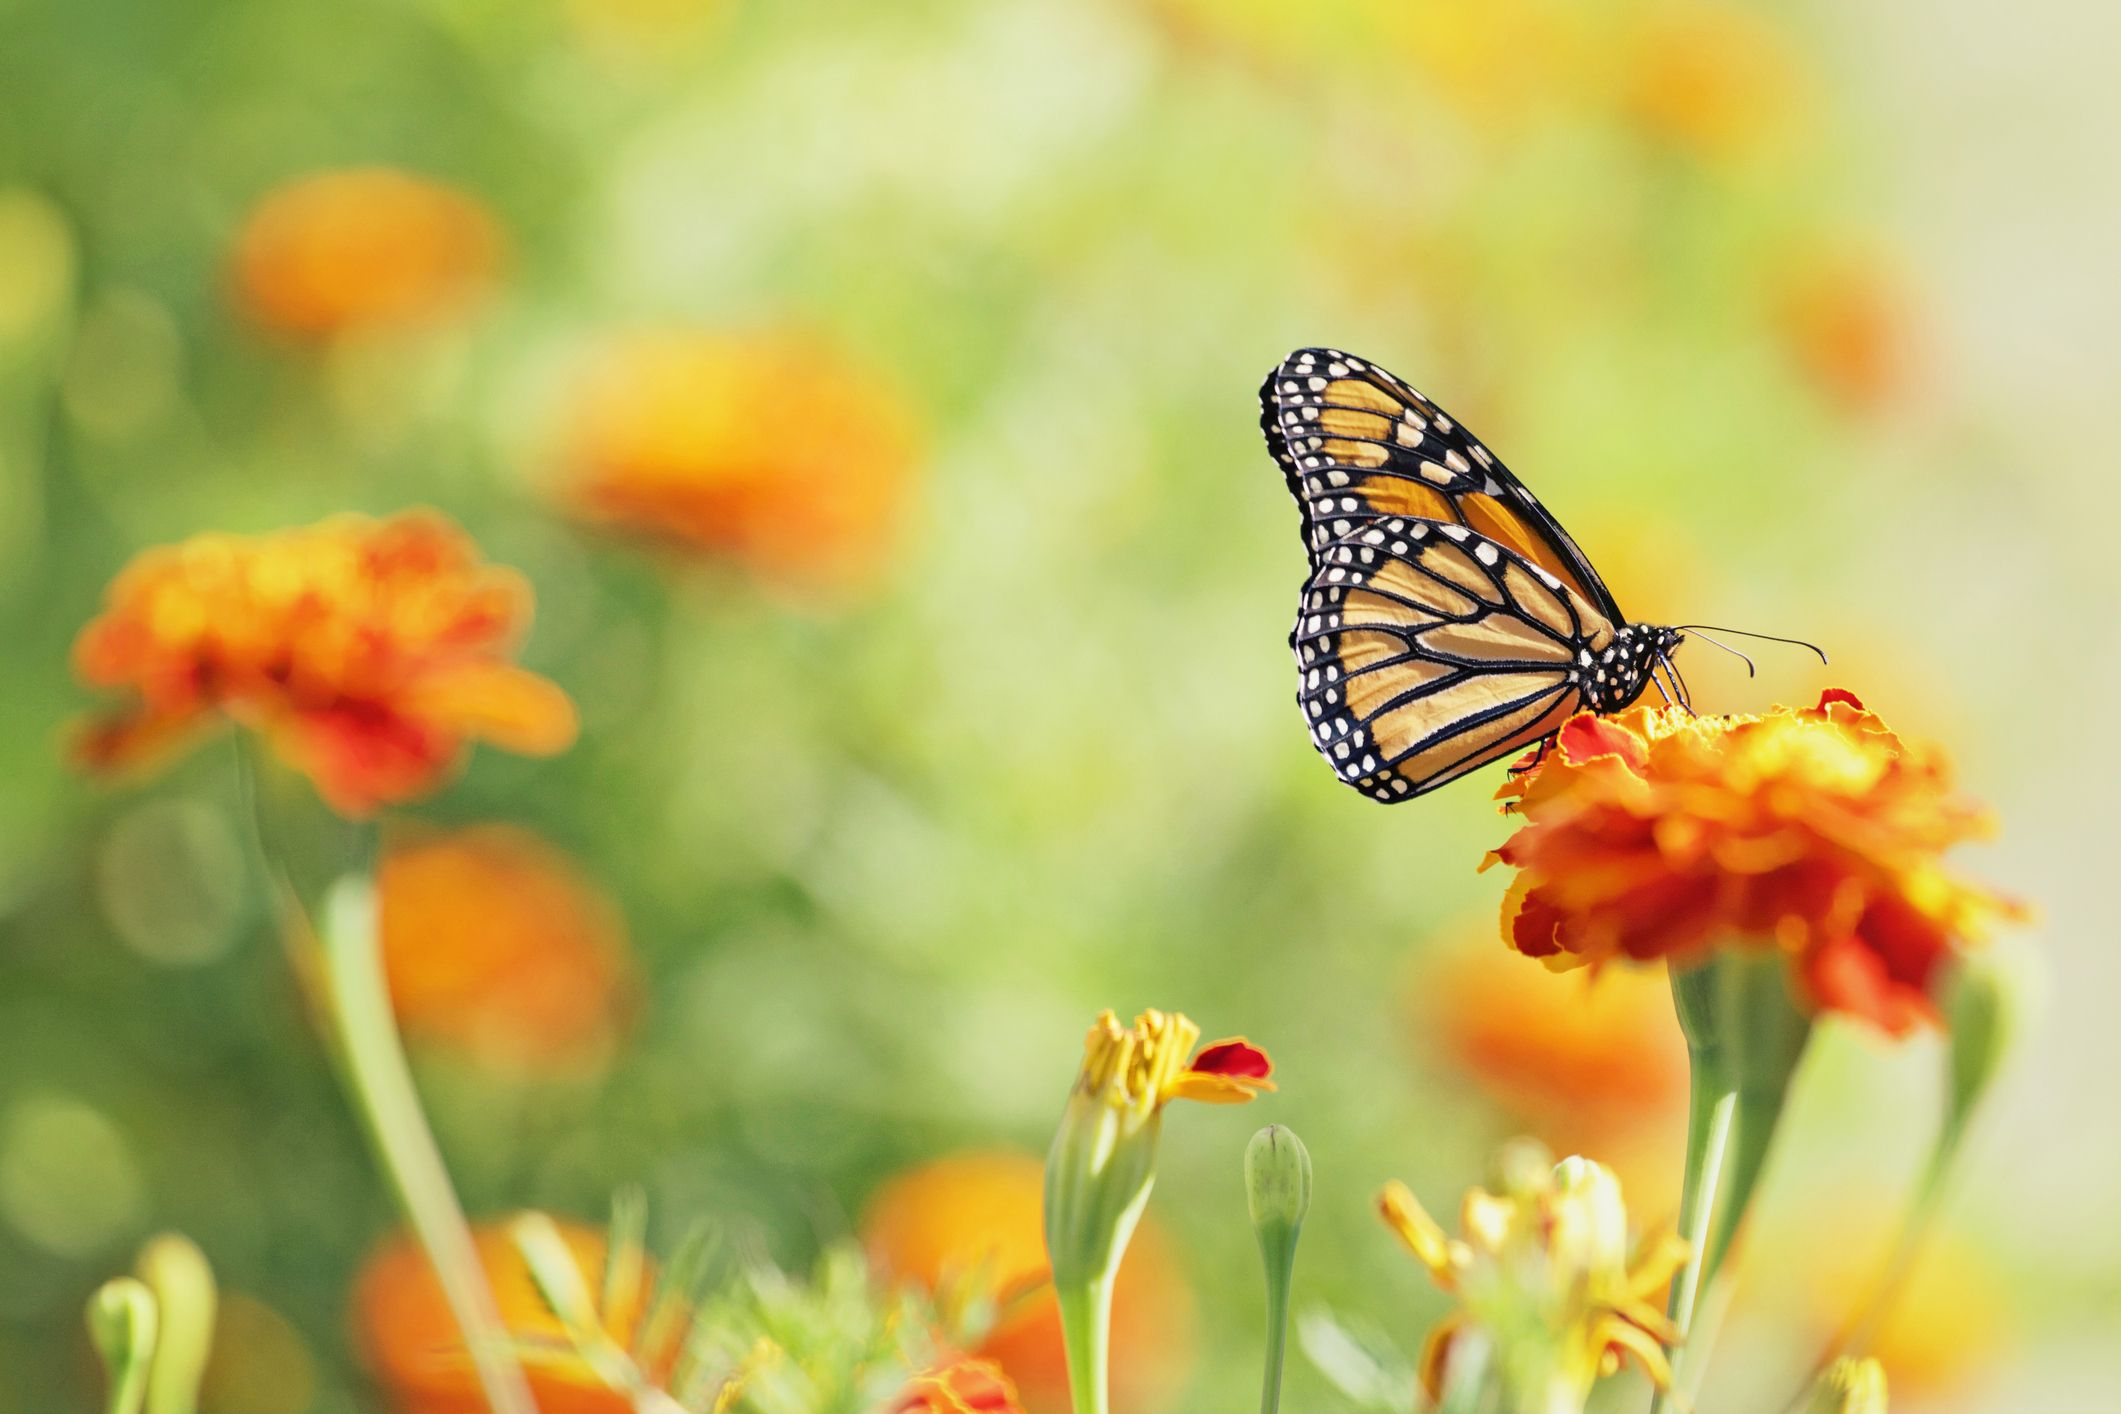 How to Create a Butterfly Garden - Attract Birds to Your Garden